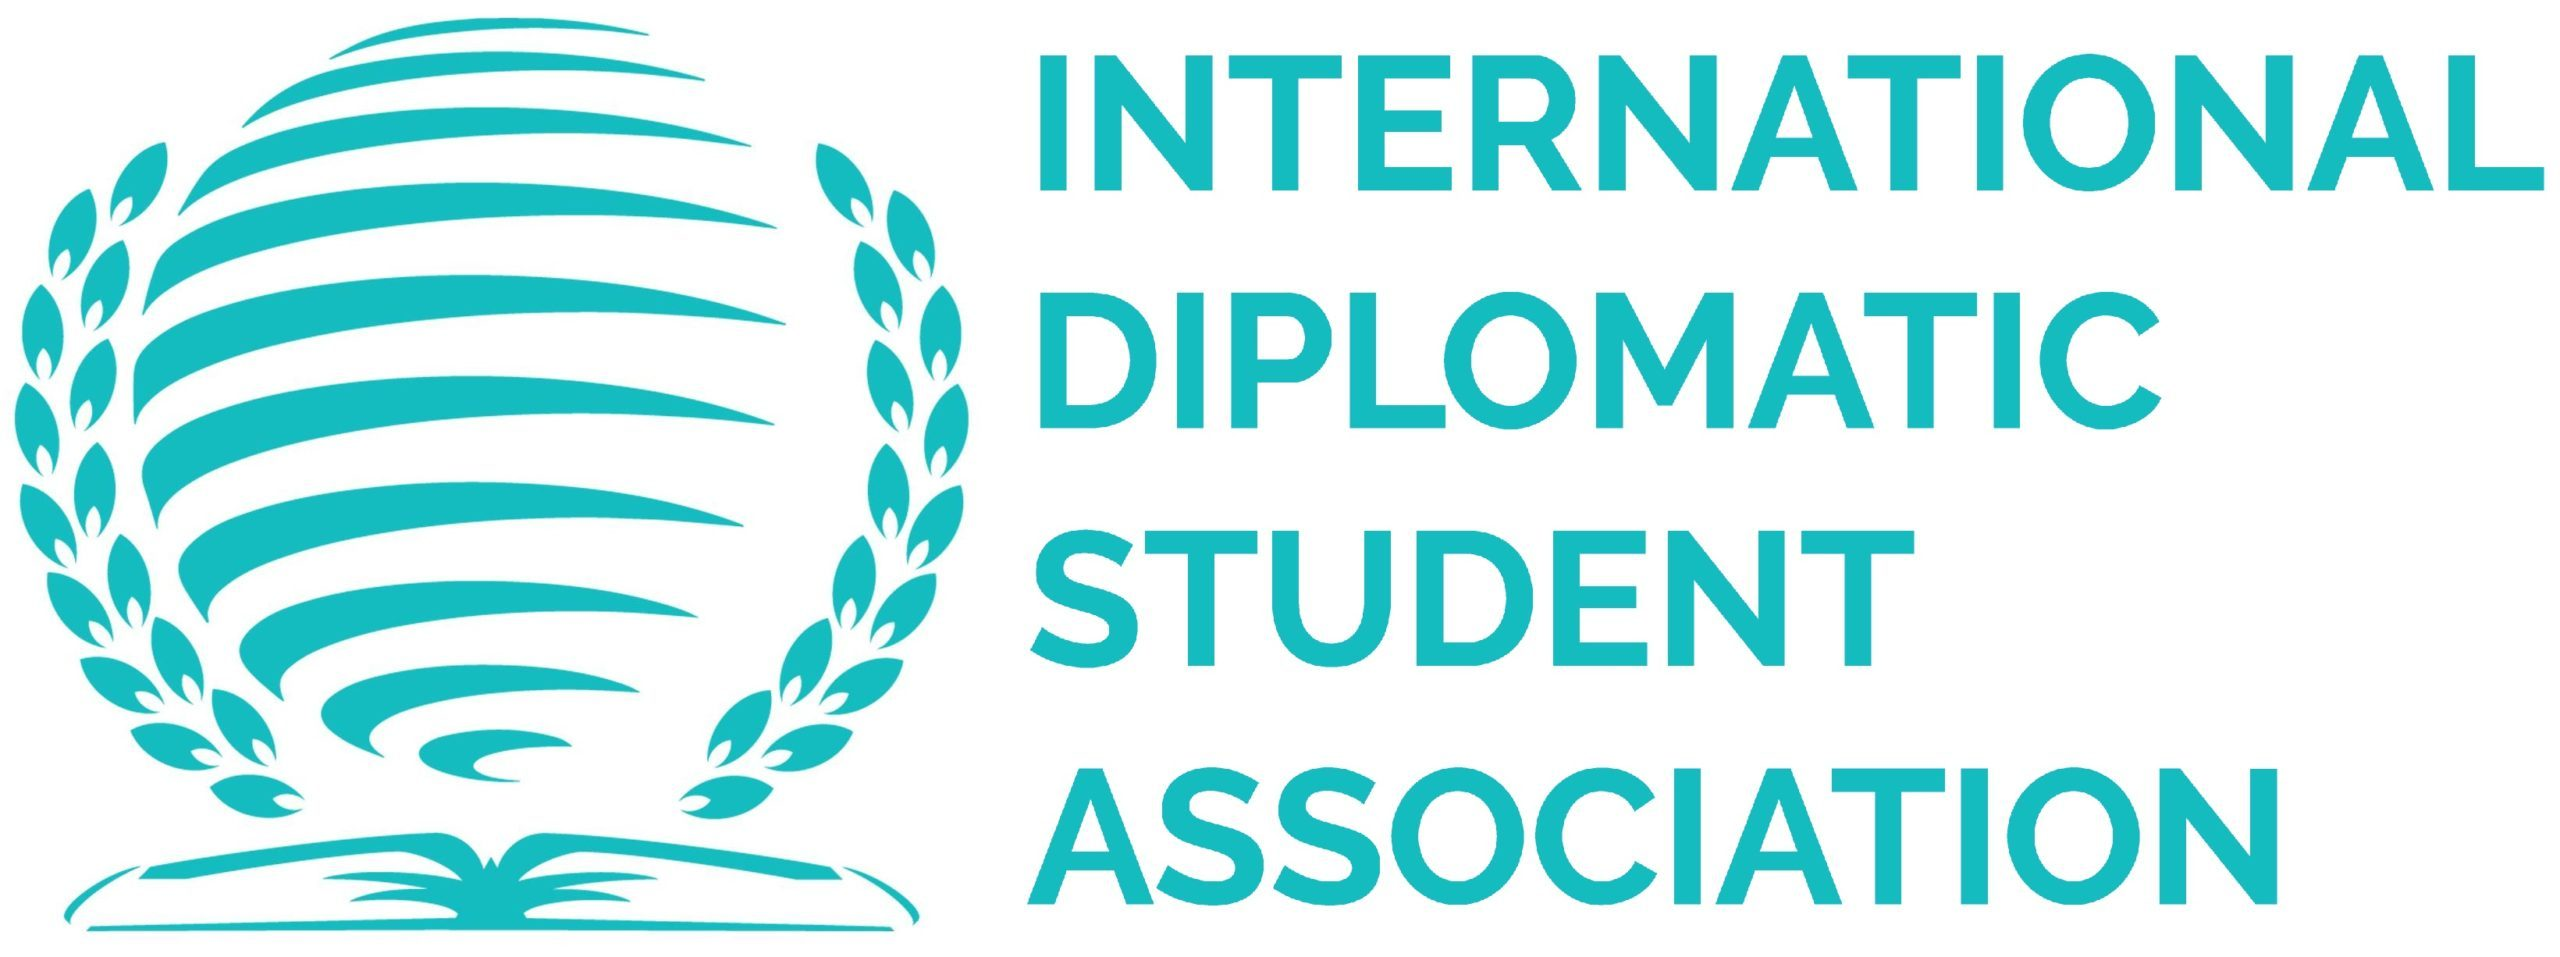 International Diplomatic Student Association